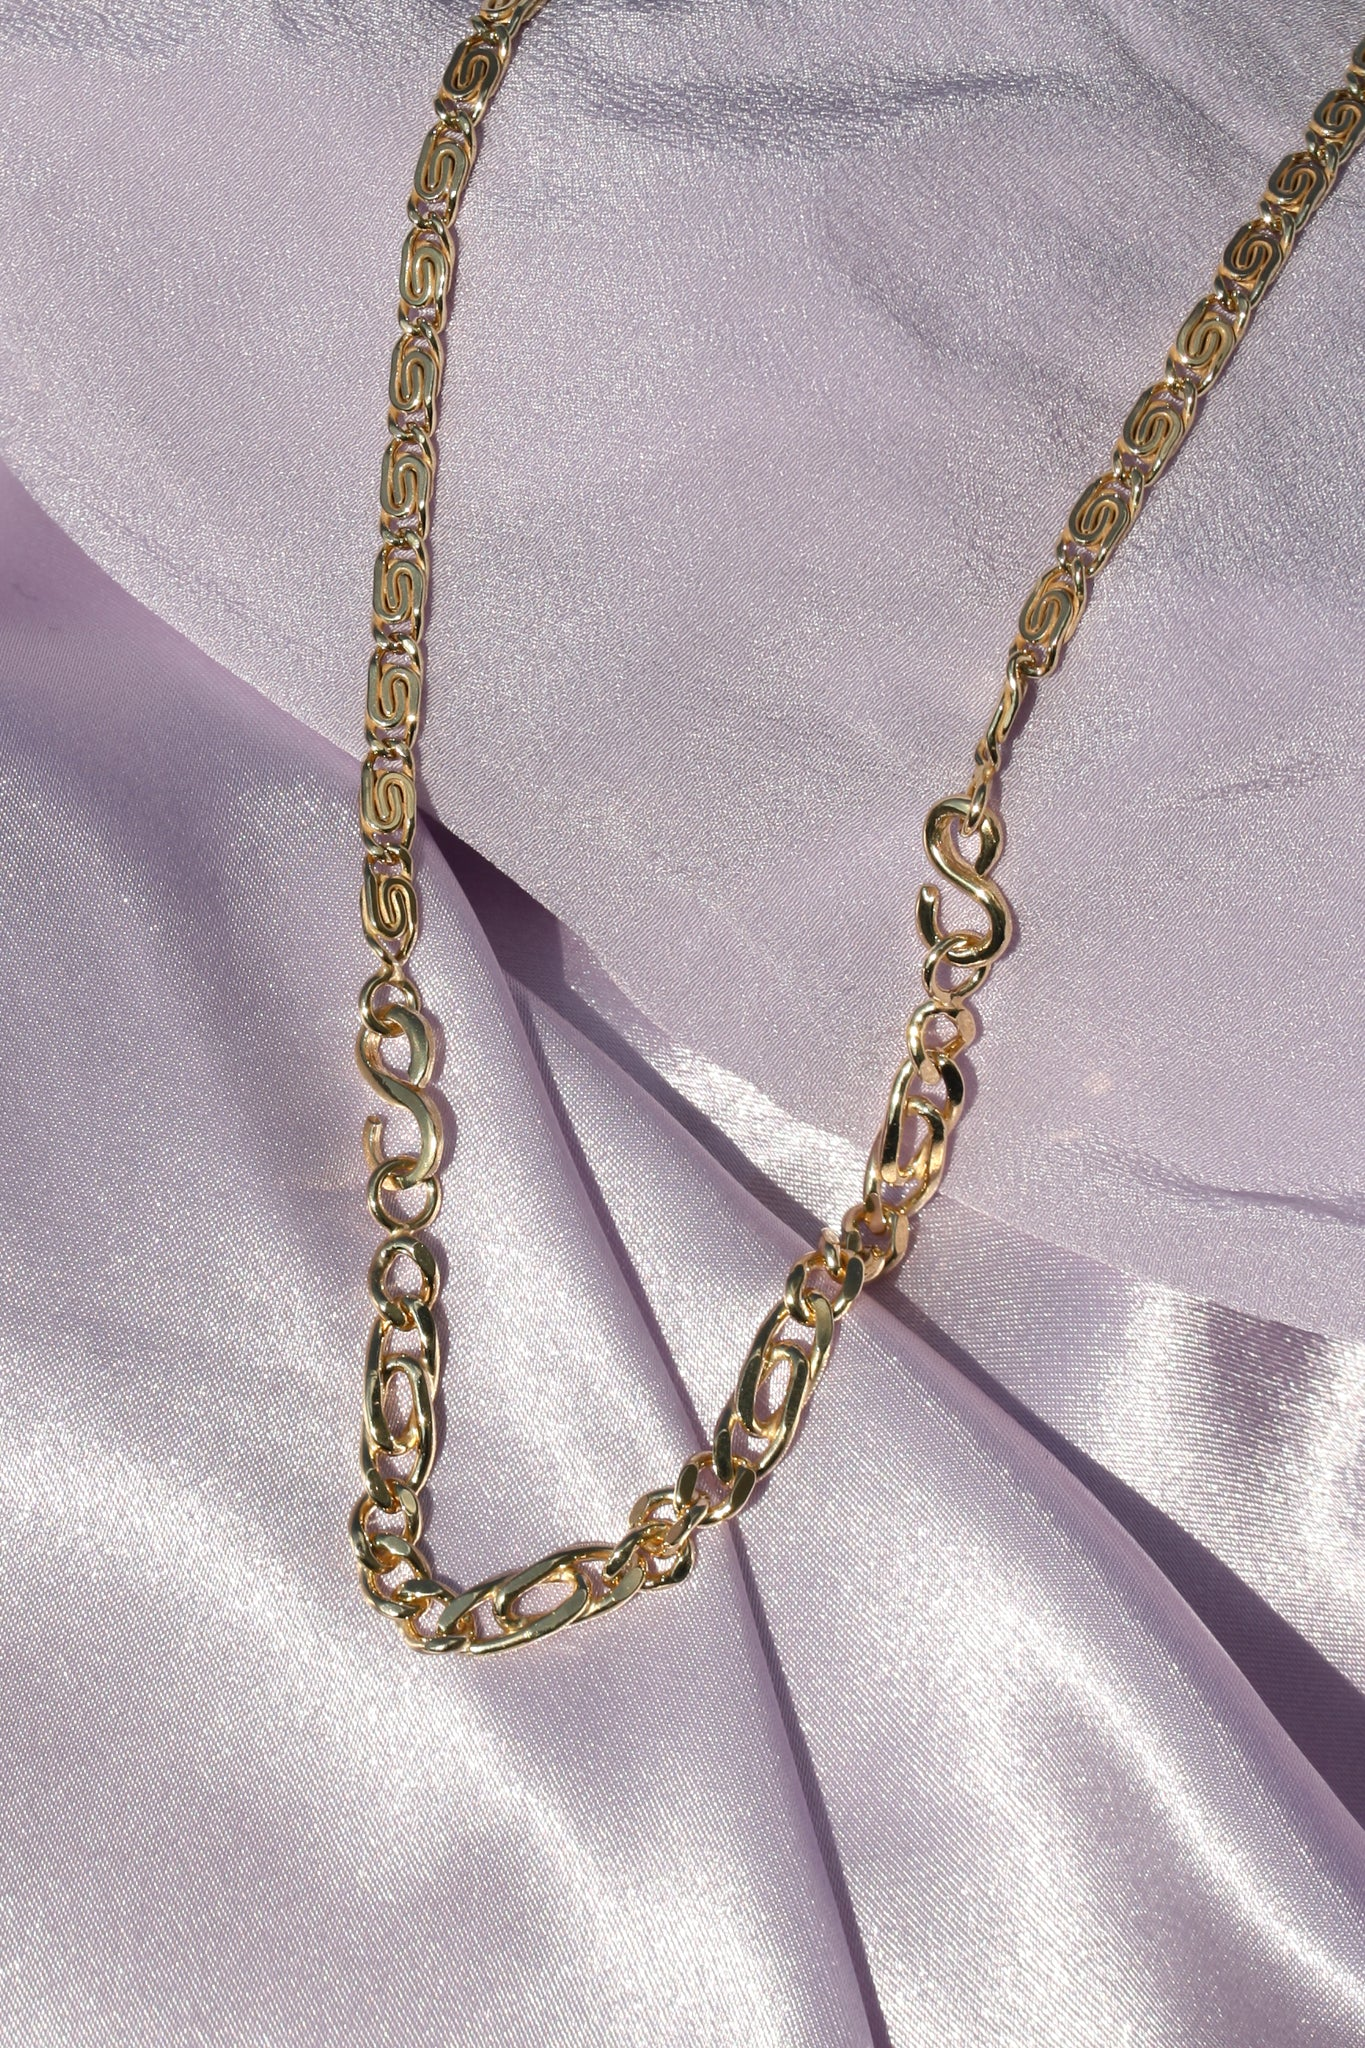 2 CHAIN NECKLACE